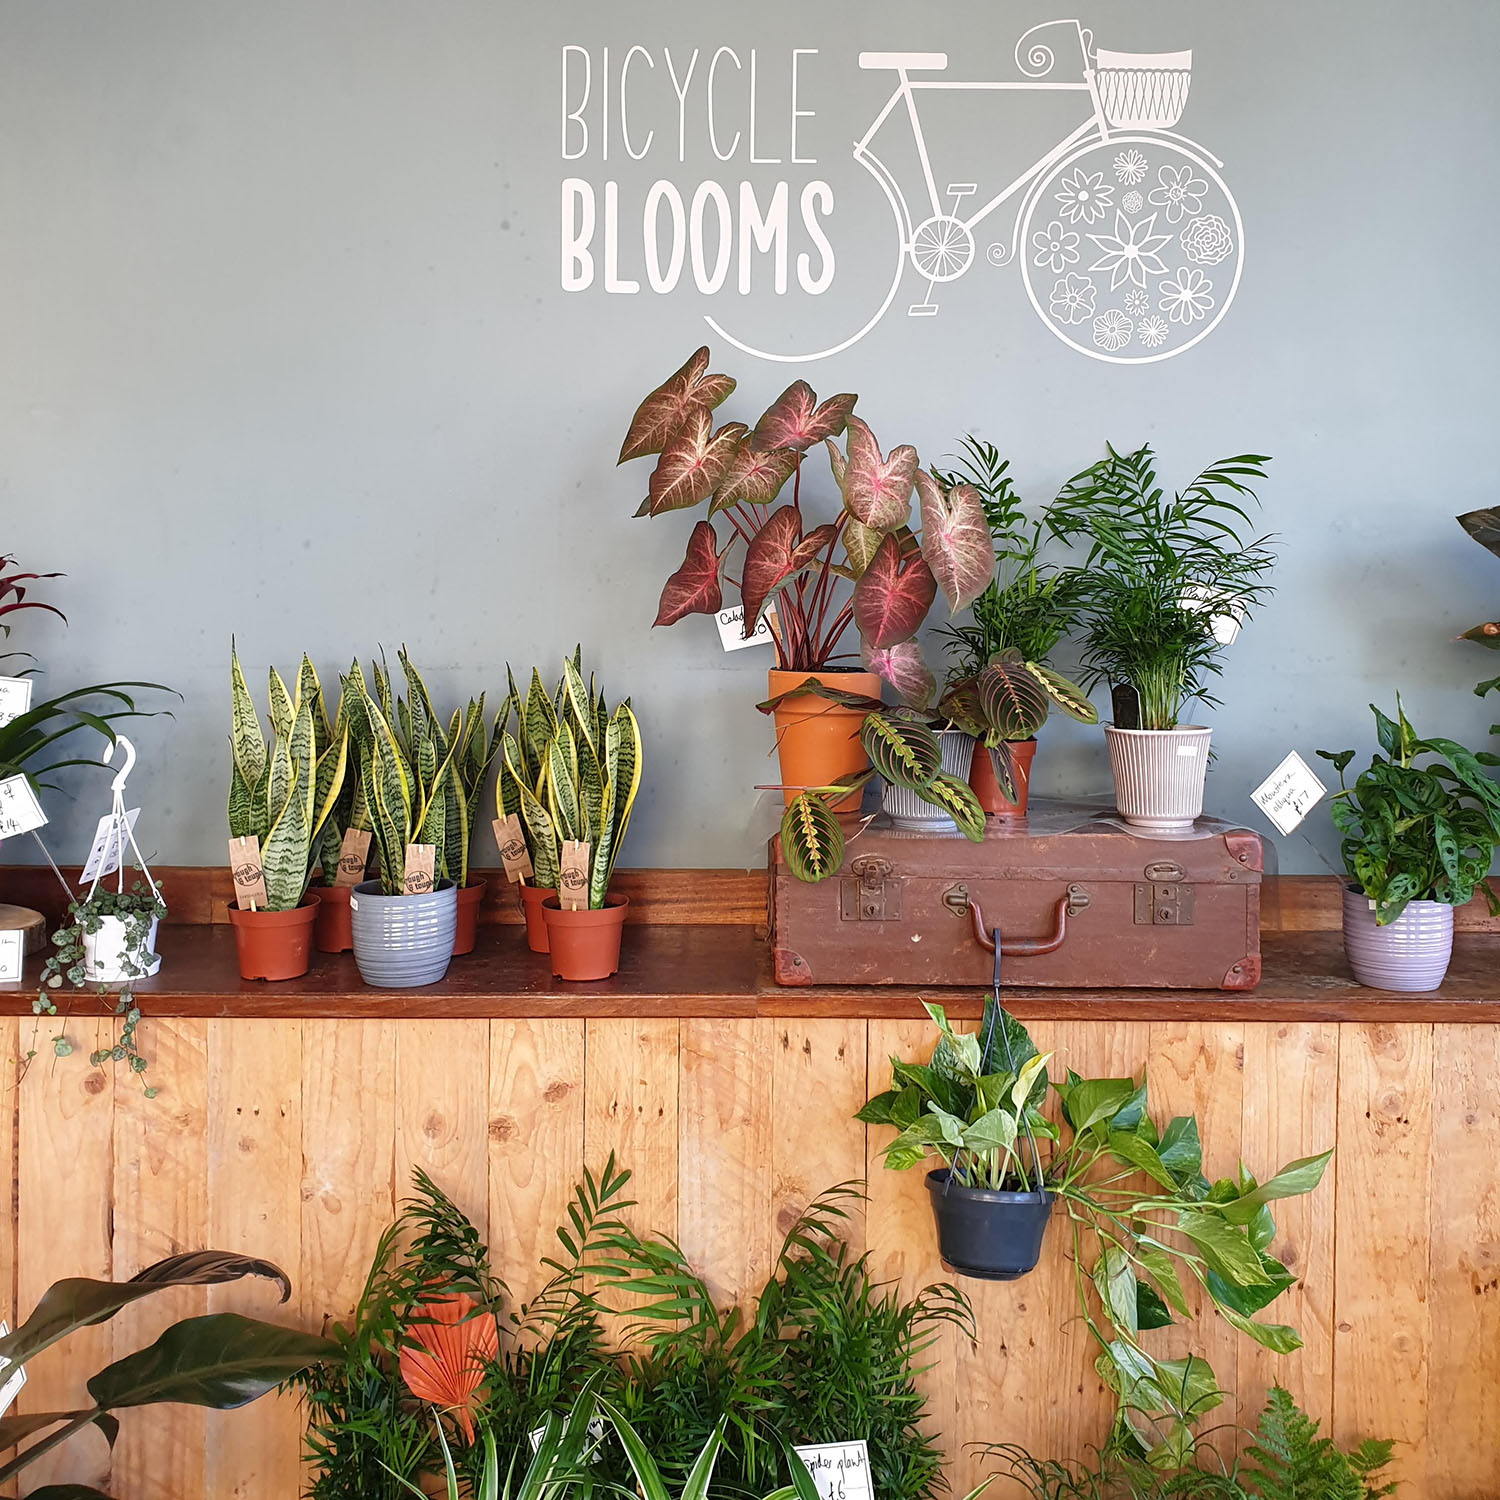 Bicycle Blooms Houseplants